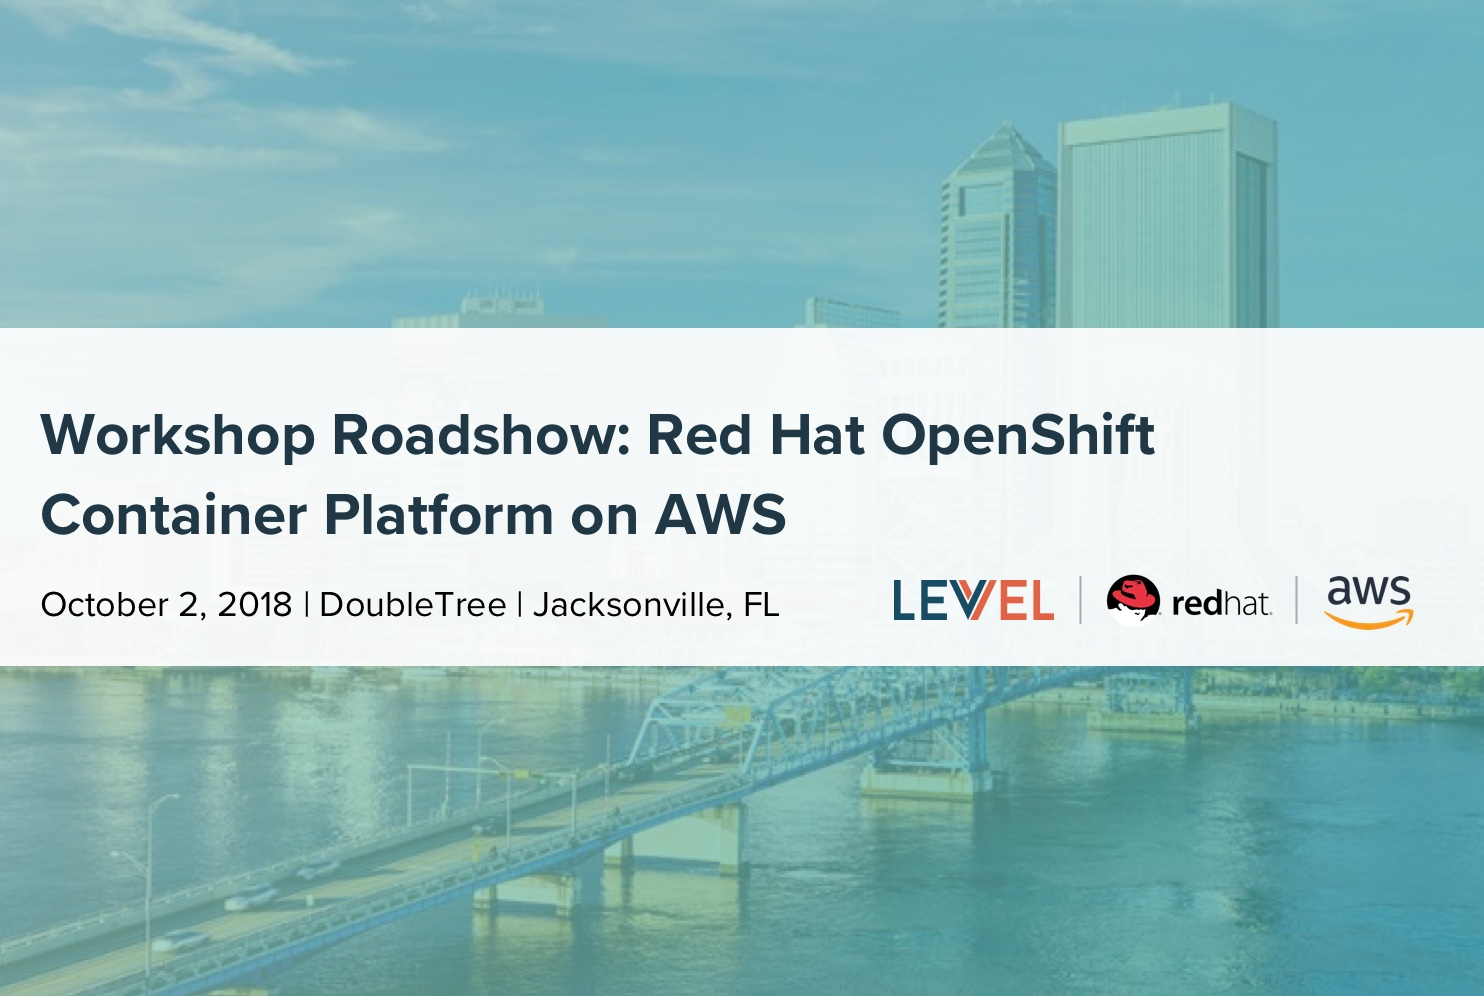 Workshop Roadshow: Red Hat OpenShift Container Platform on AWS